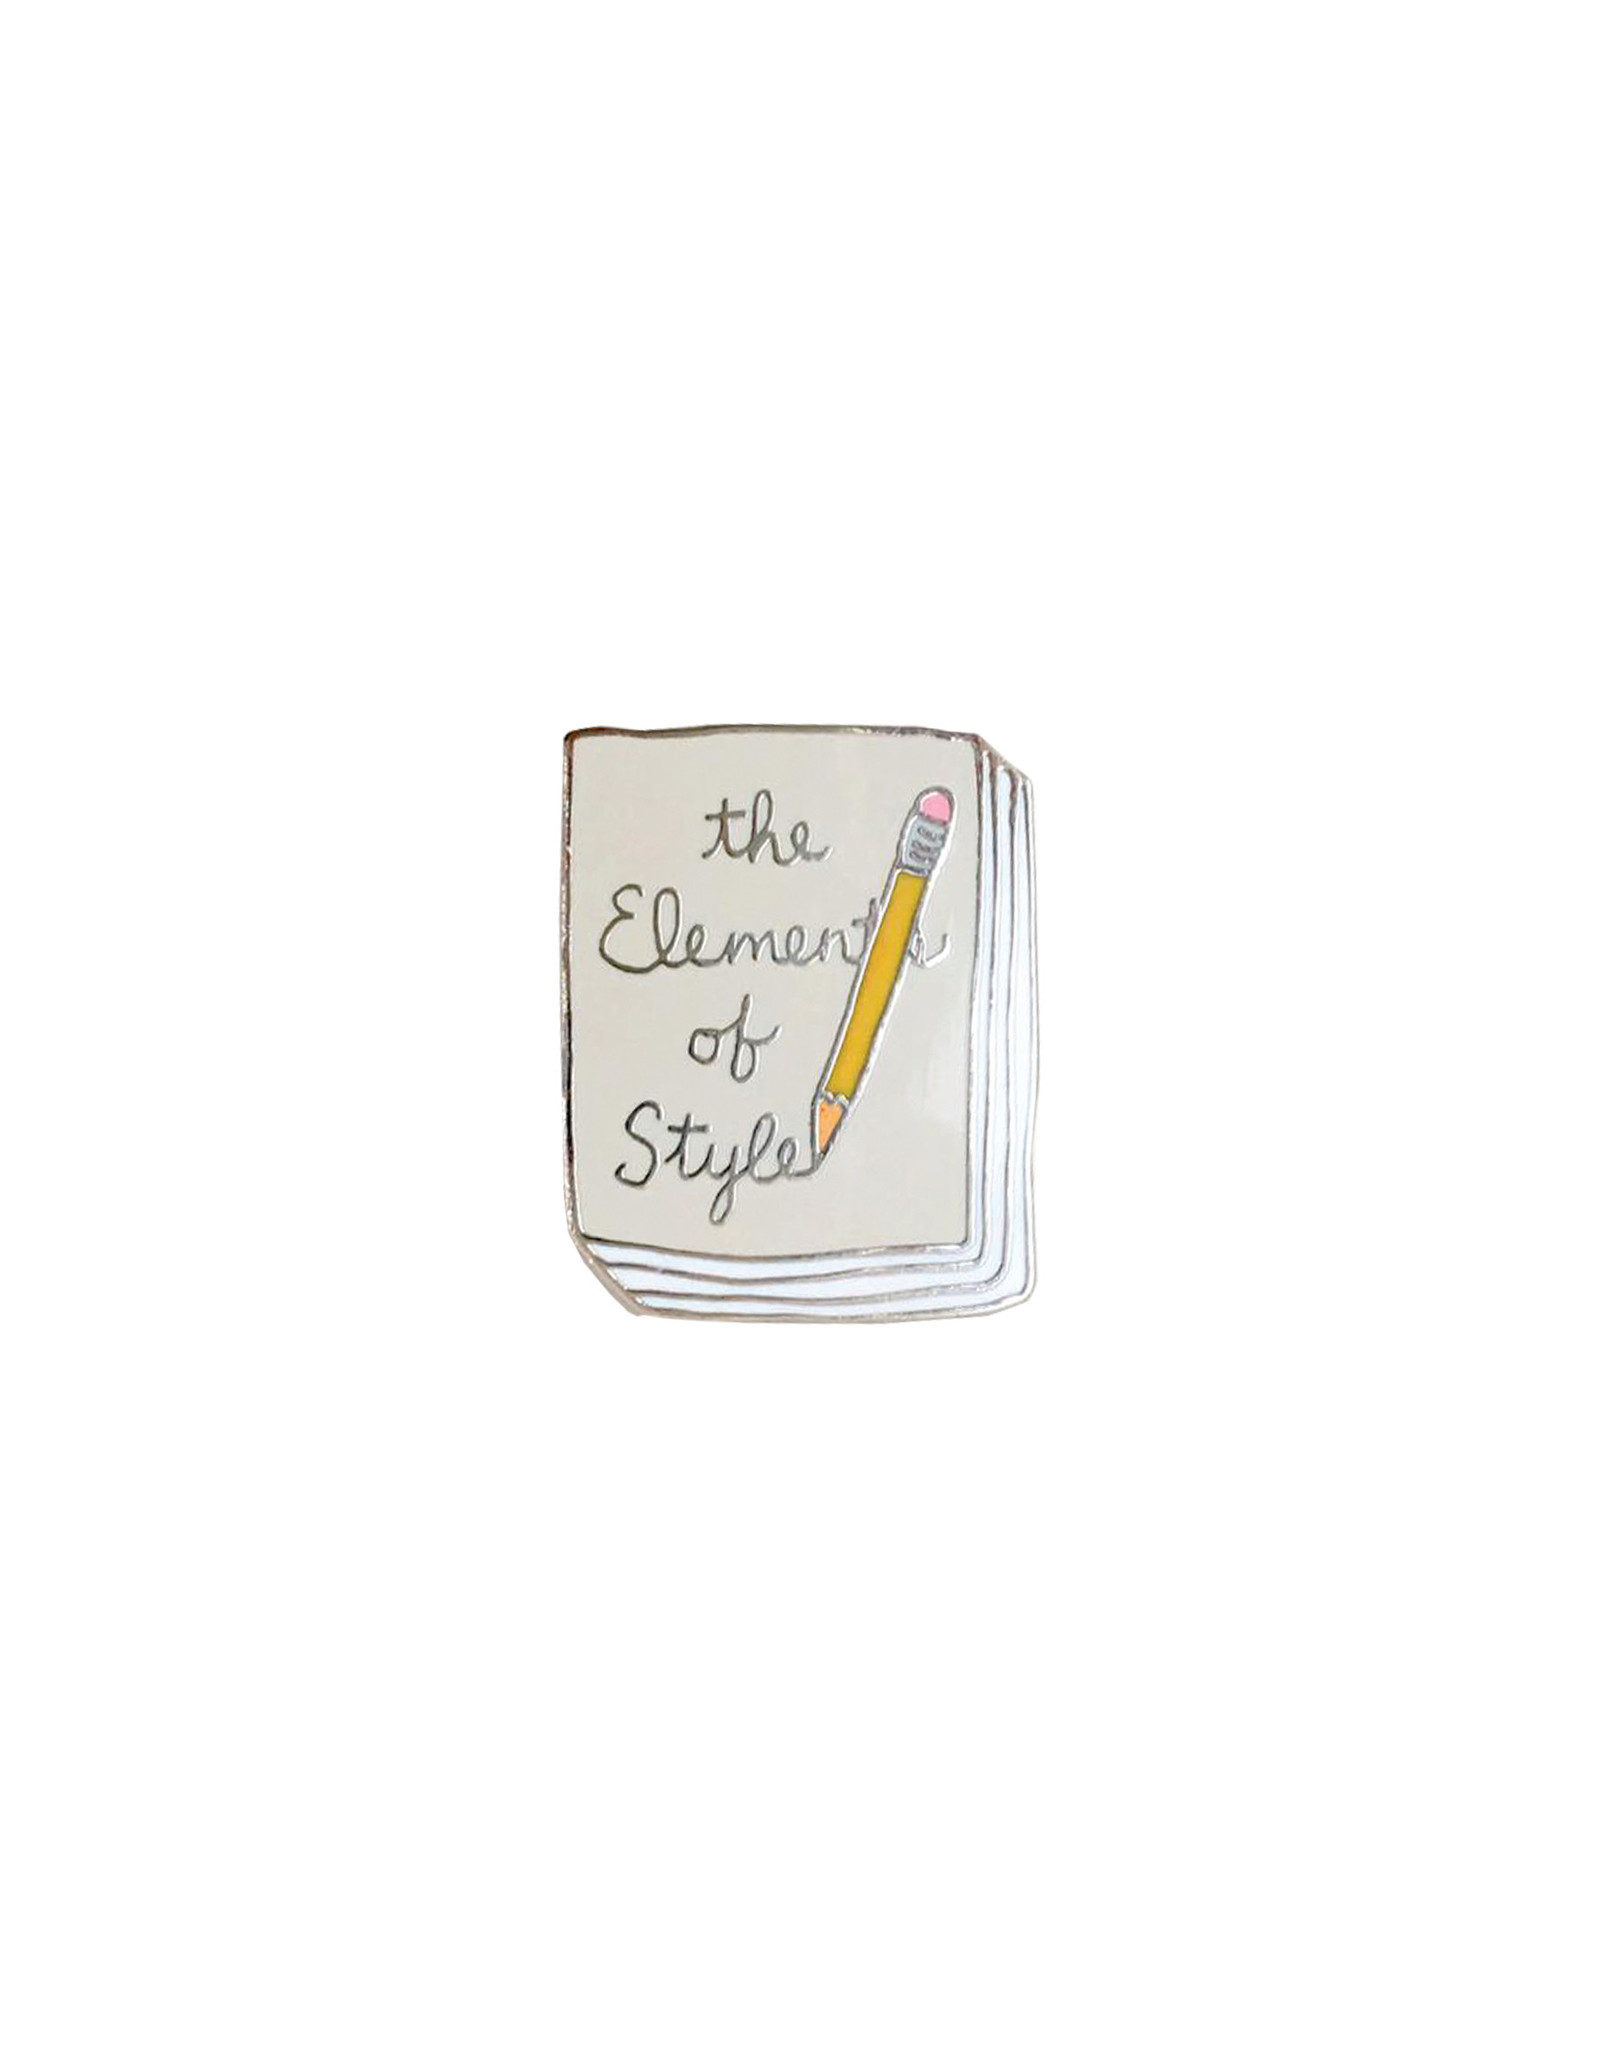 Ideal Bookshelf Book Pin: The Elements of Style